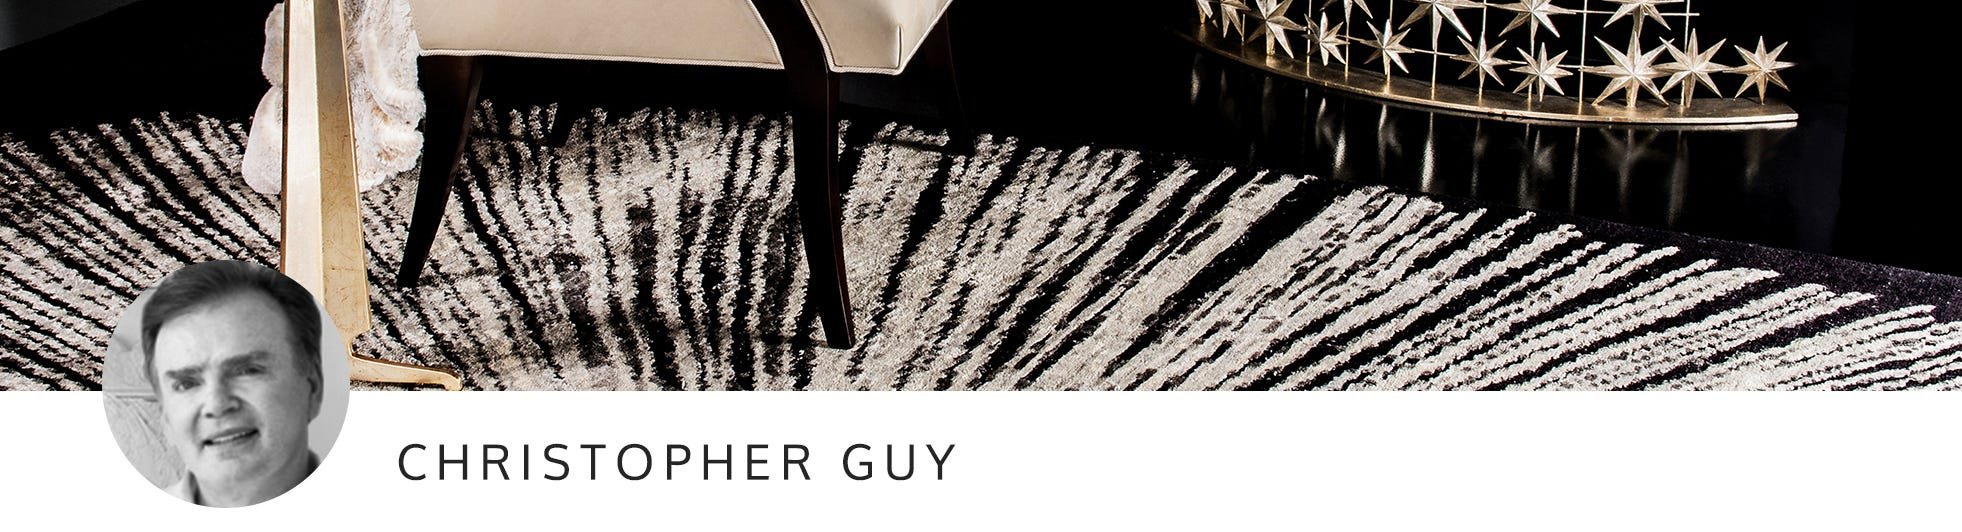 Christopher Guy Brands Area Rugs